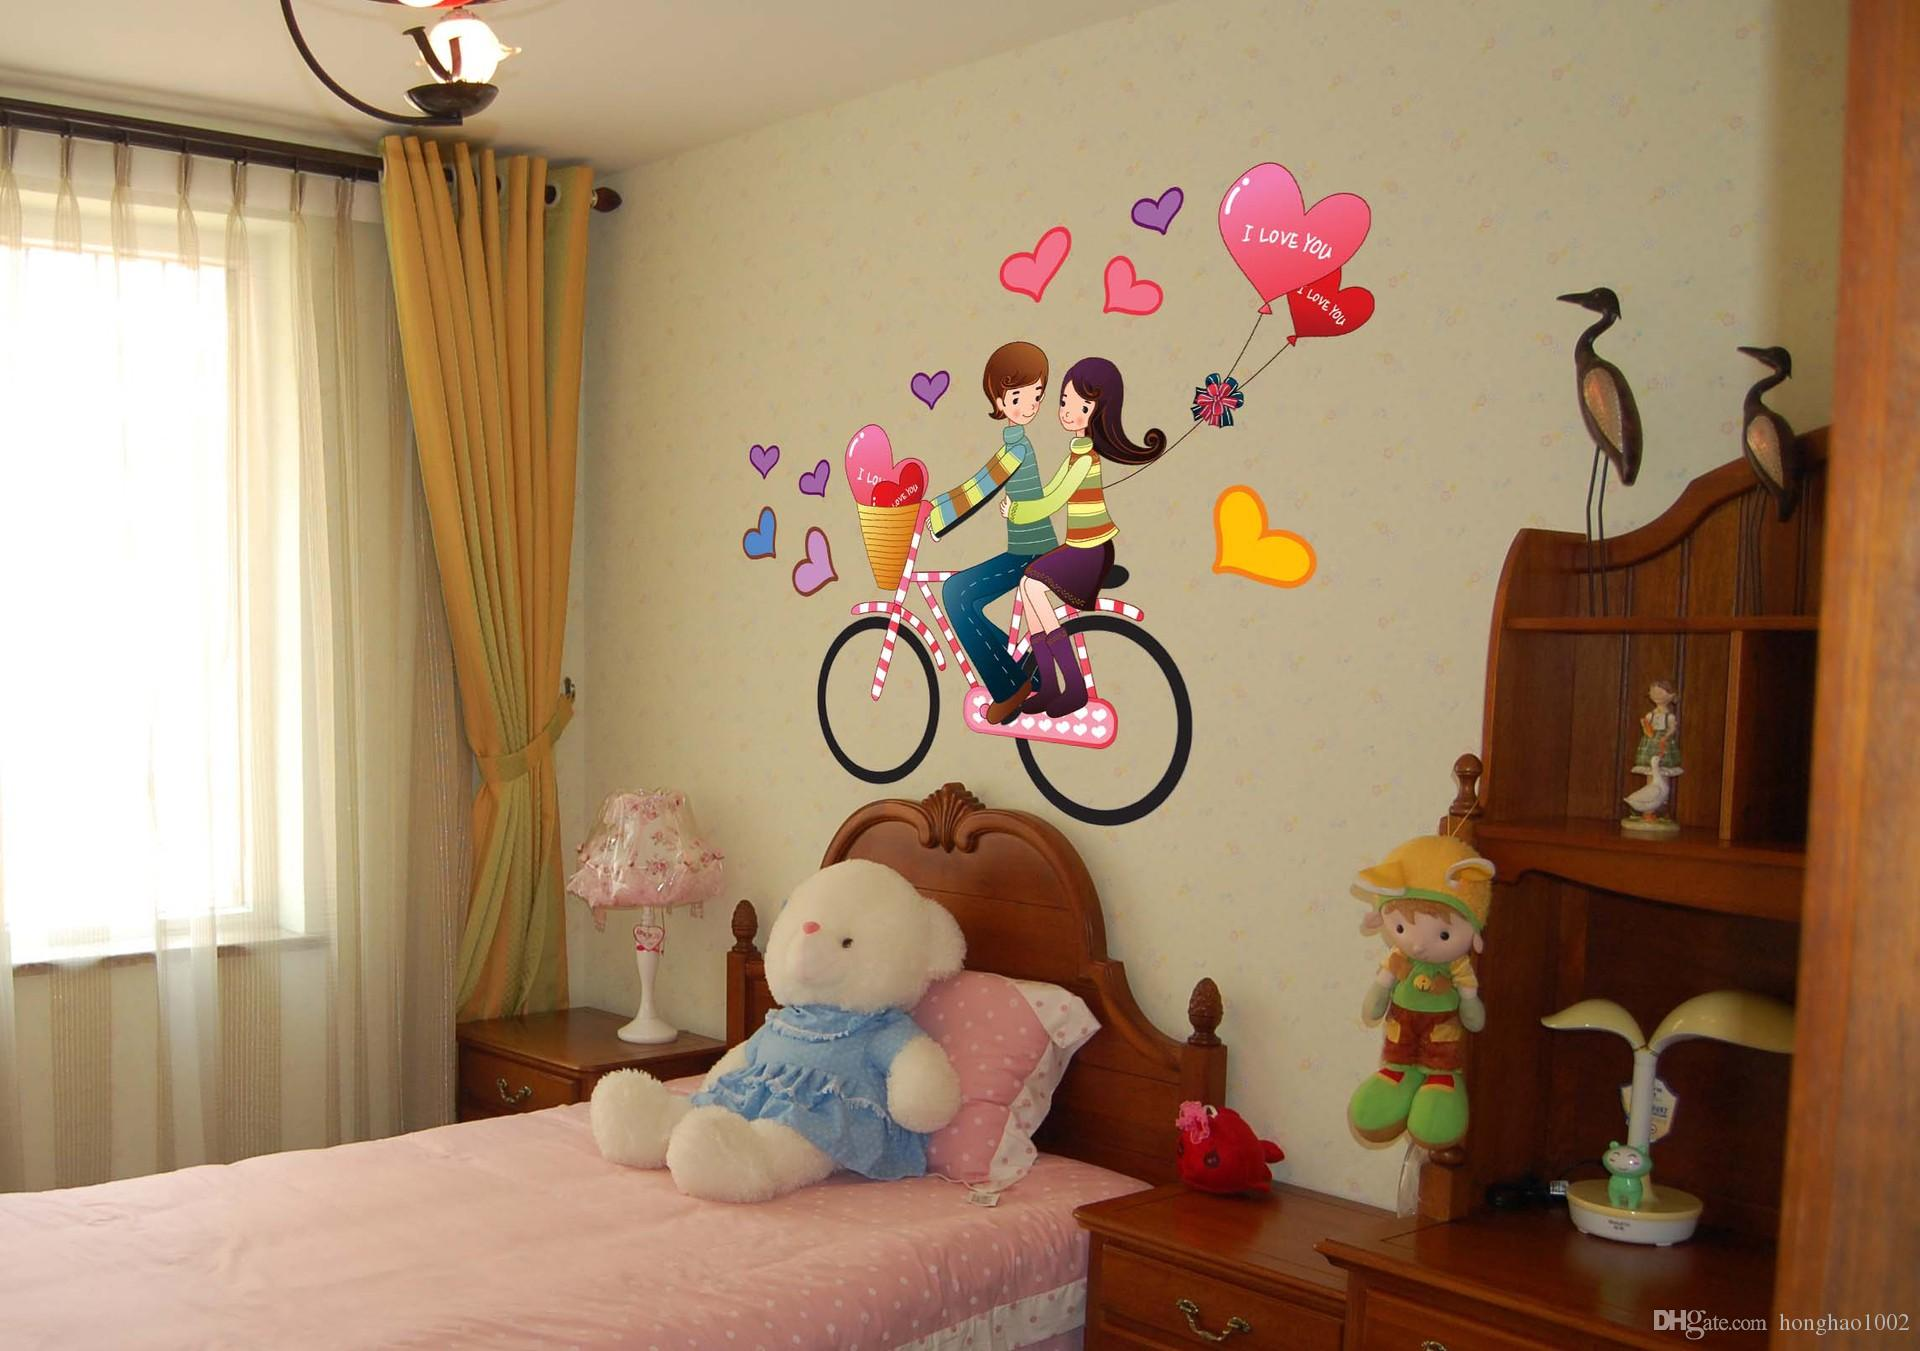 Decorative Wall Stickers wall stickers romantic couple bike travel decoration wall hangings